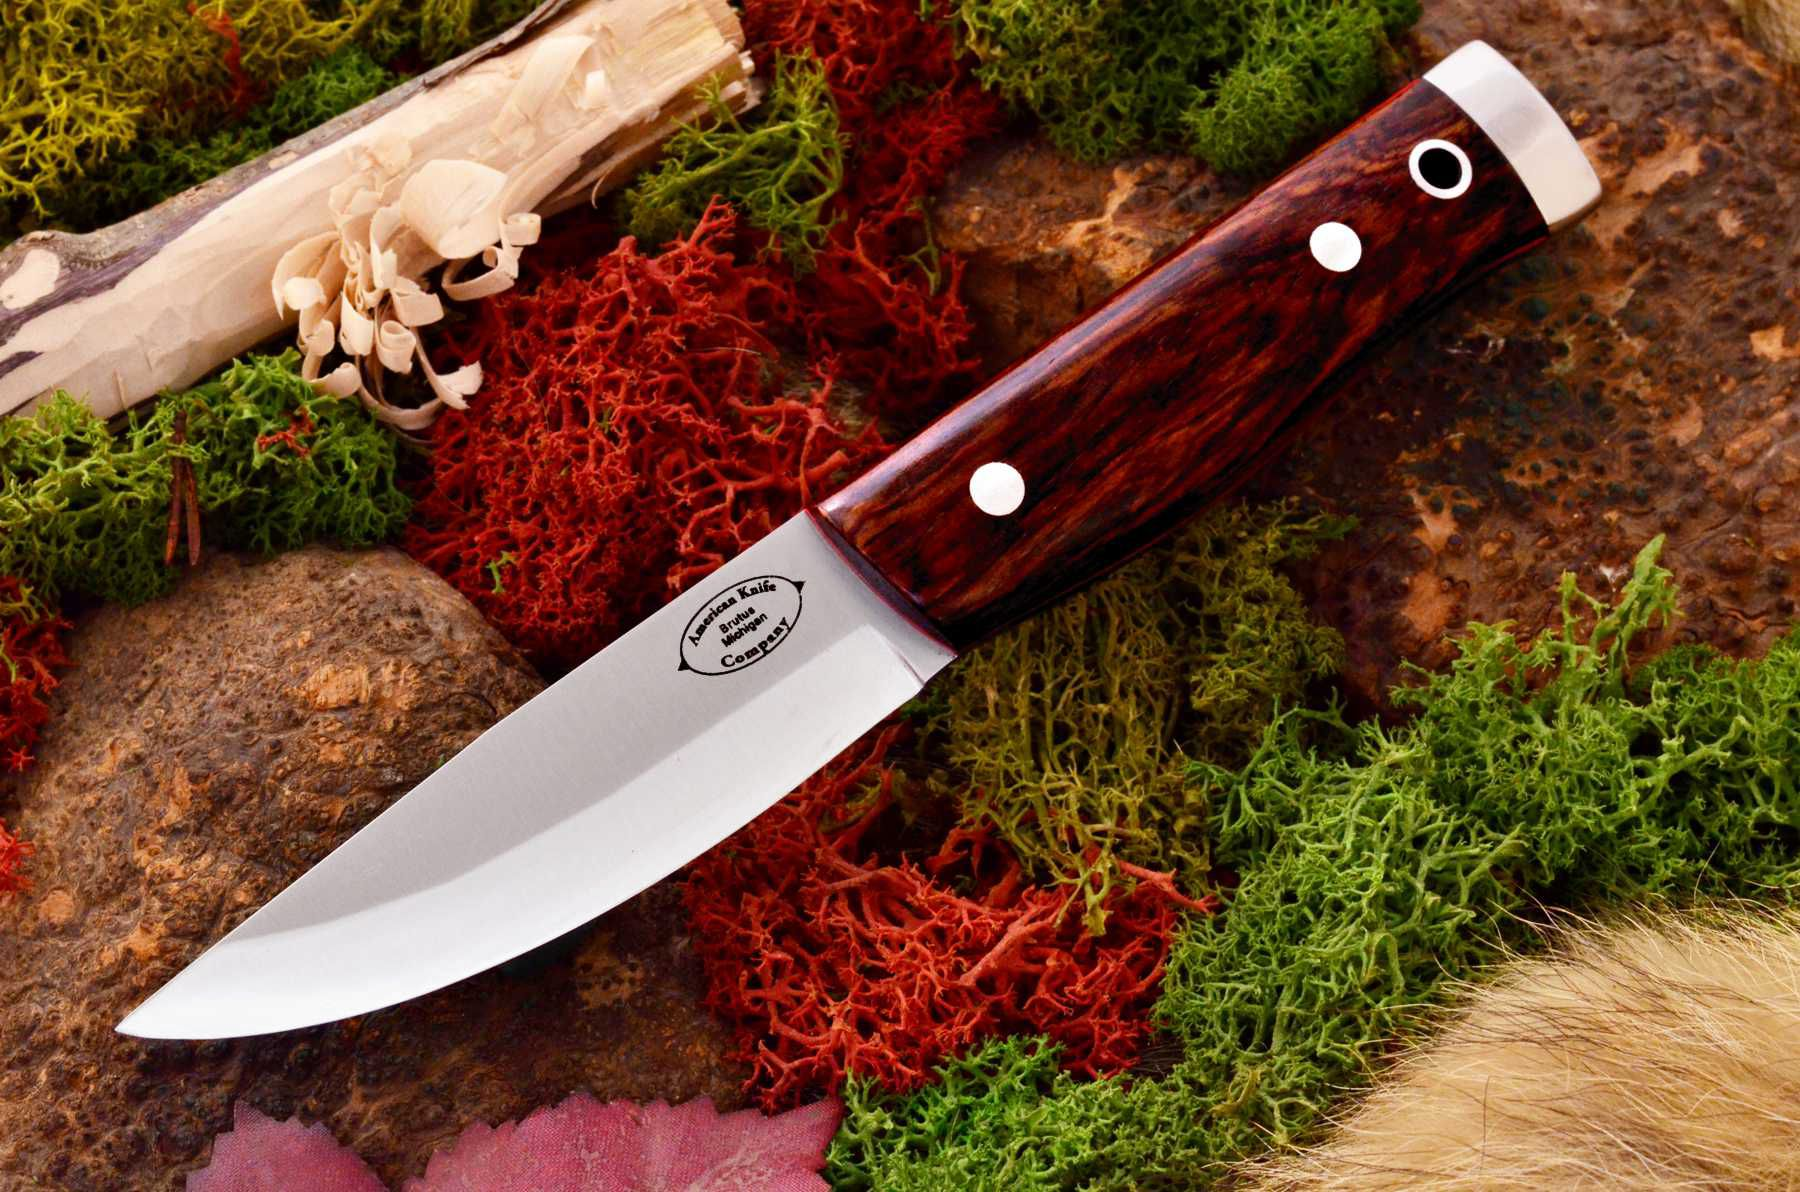 akc forest compact cocobolo red liners 369.95